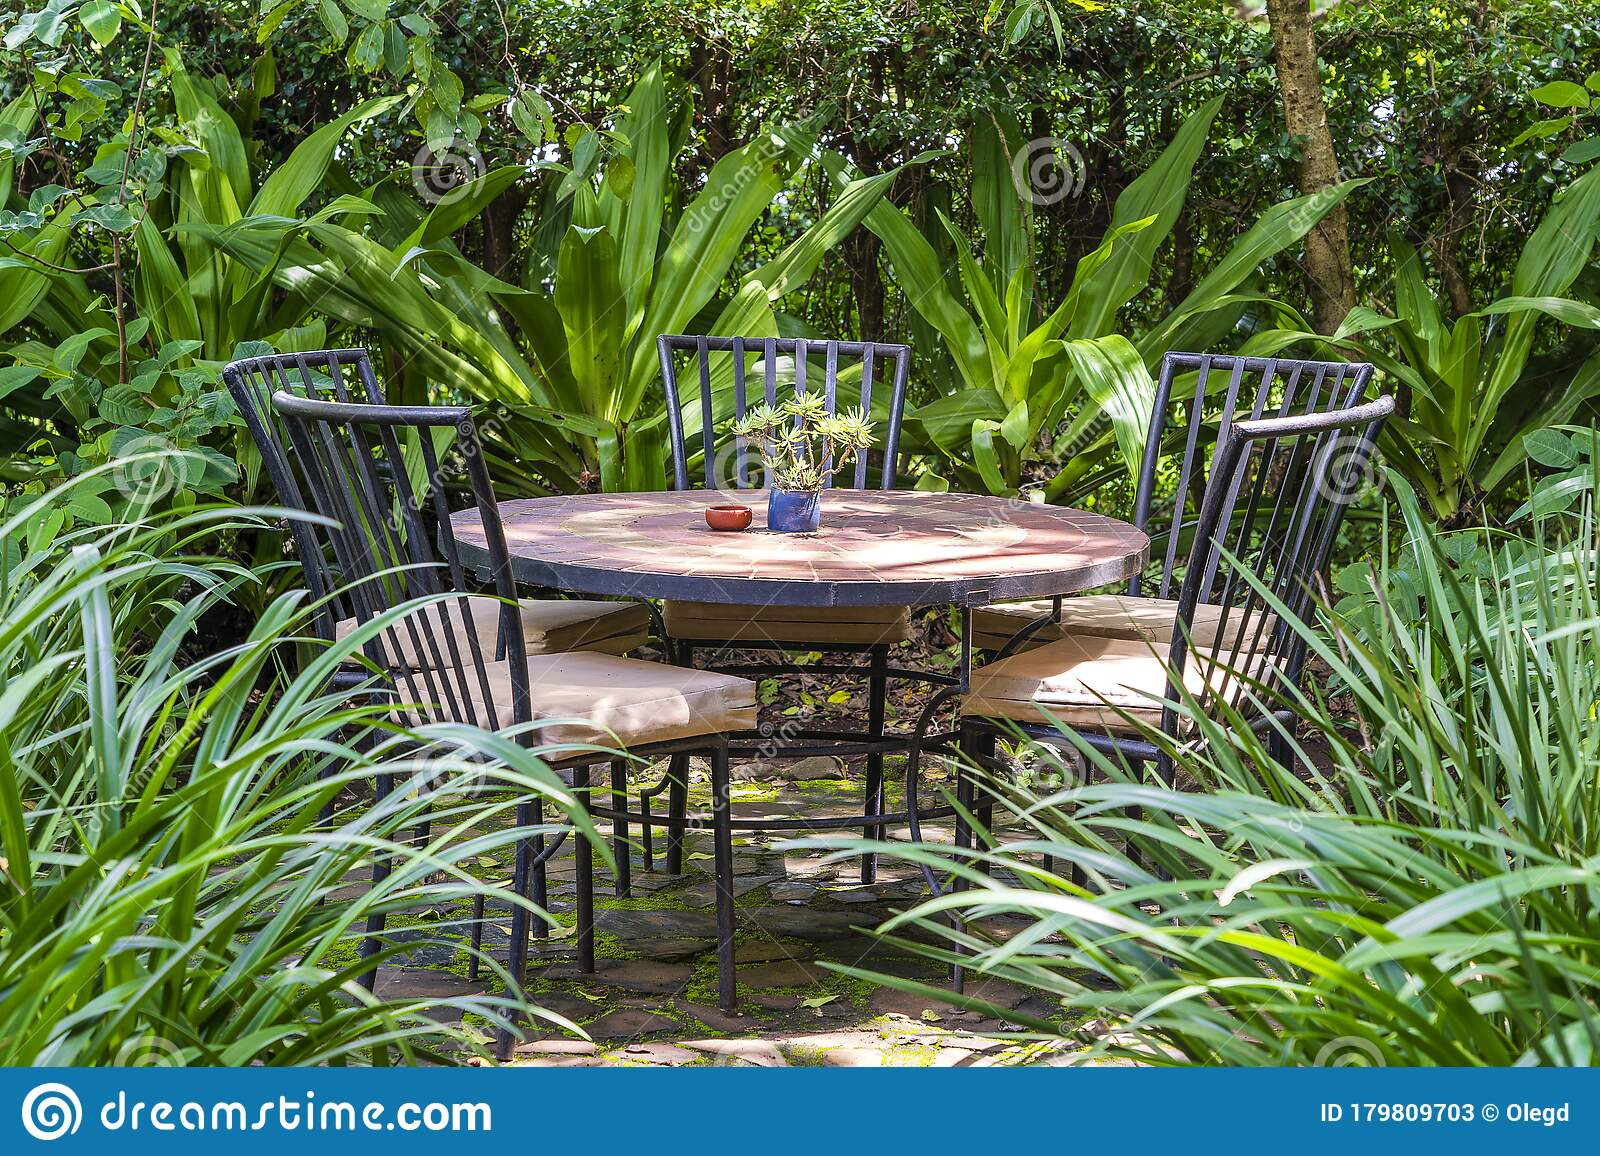 Empty Restaurant Terrace In Tropical Garden With Tables And Chairs Tanzania Africa Stock Image Image Of Rest Elegant 179809703